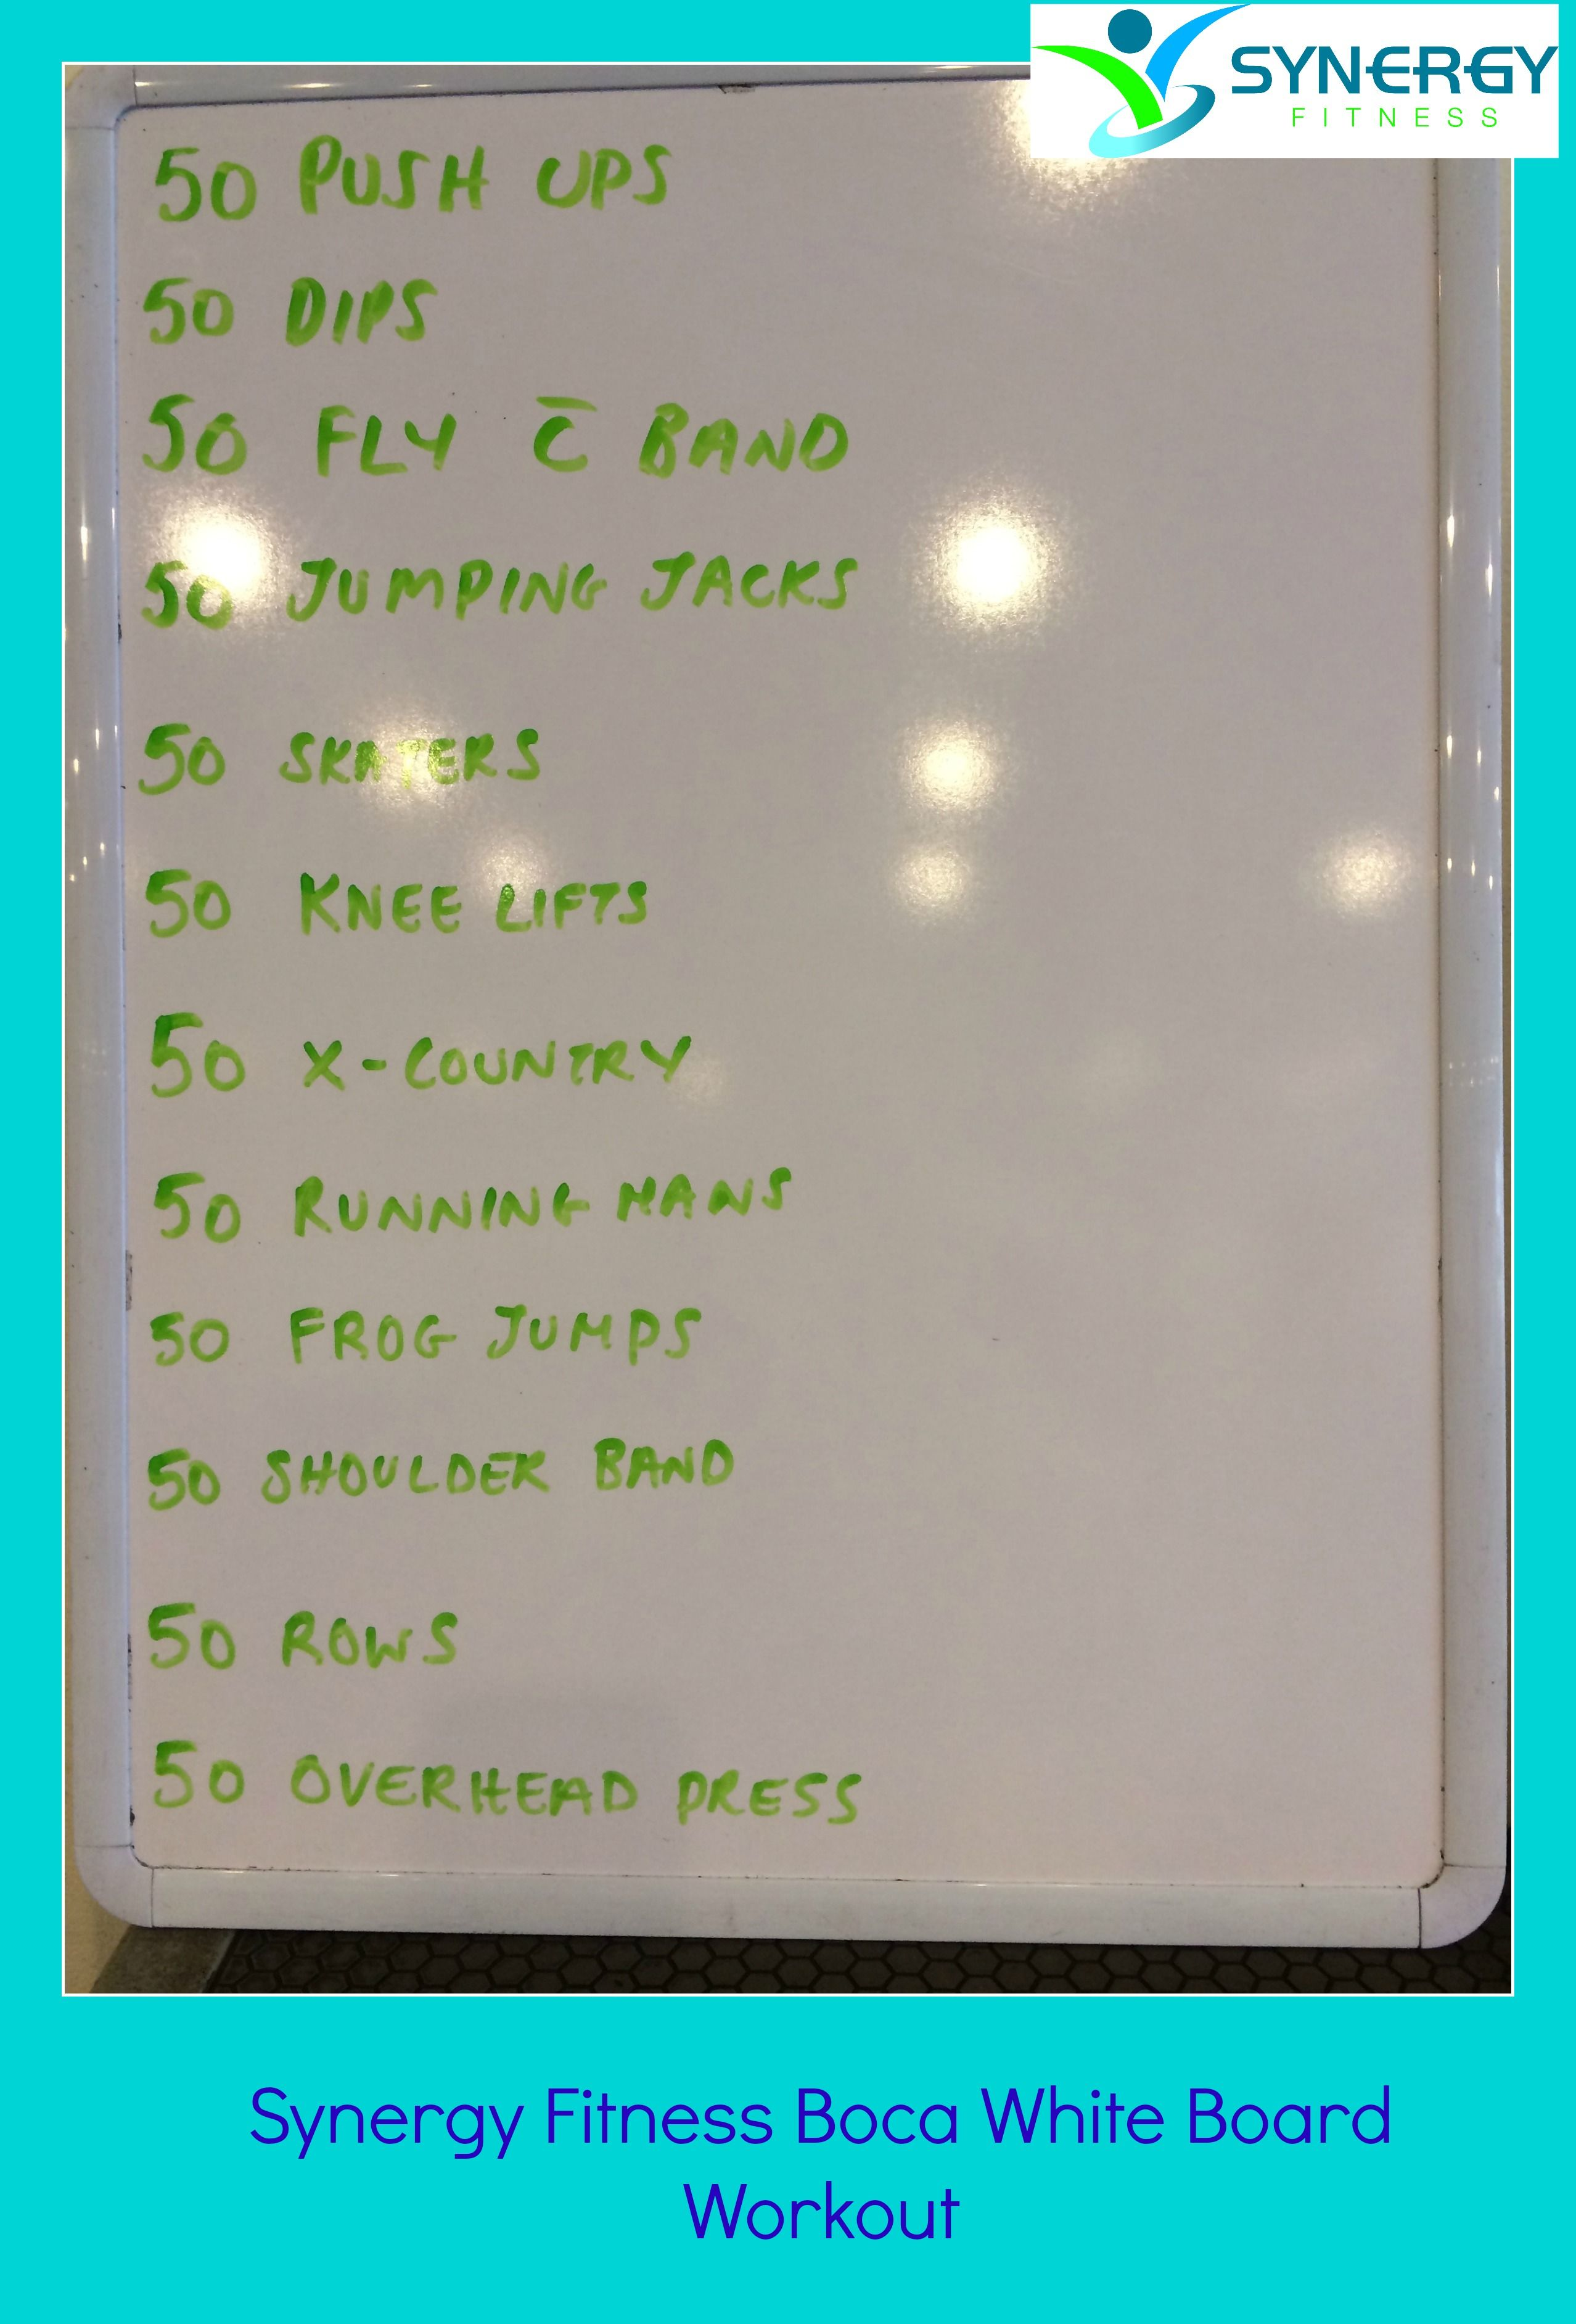 Cant Get To The Gym Use Our Whiteboard Workouts For Inspiration Synergy Fitness Boca Workout 50 Push Ups Fitness